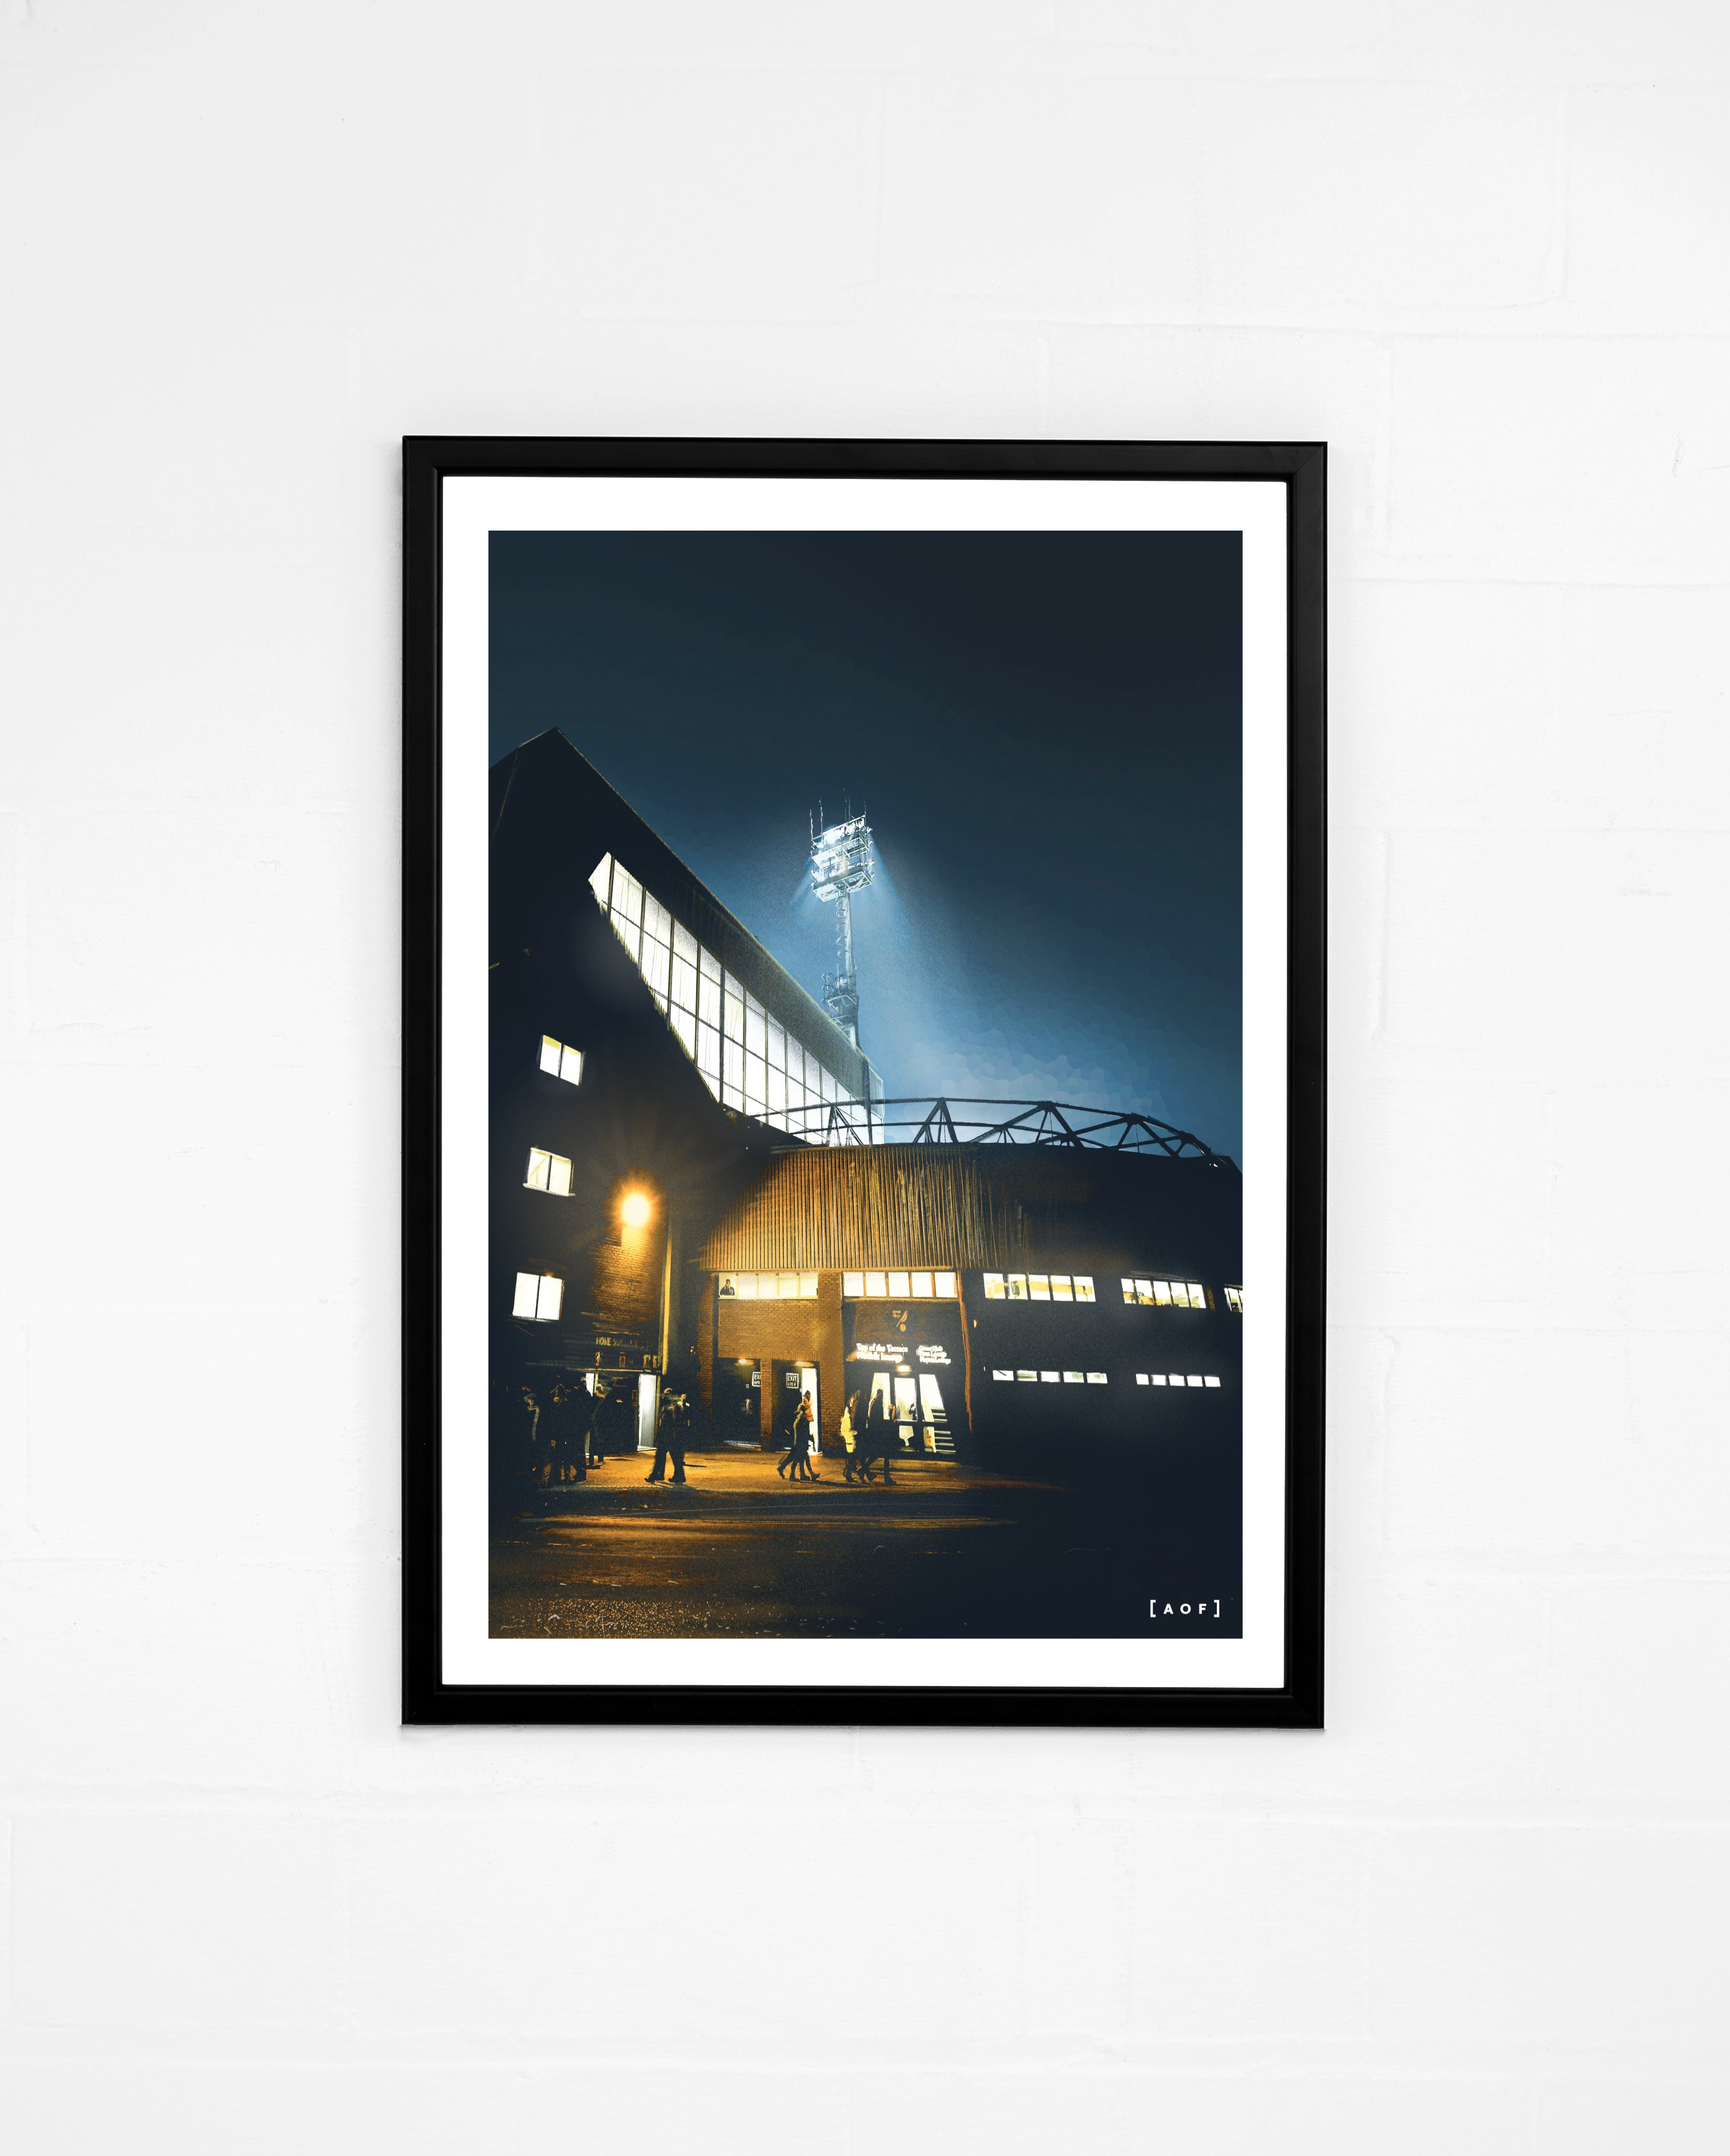 Carrow Road by Night - Print or Canvas